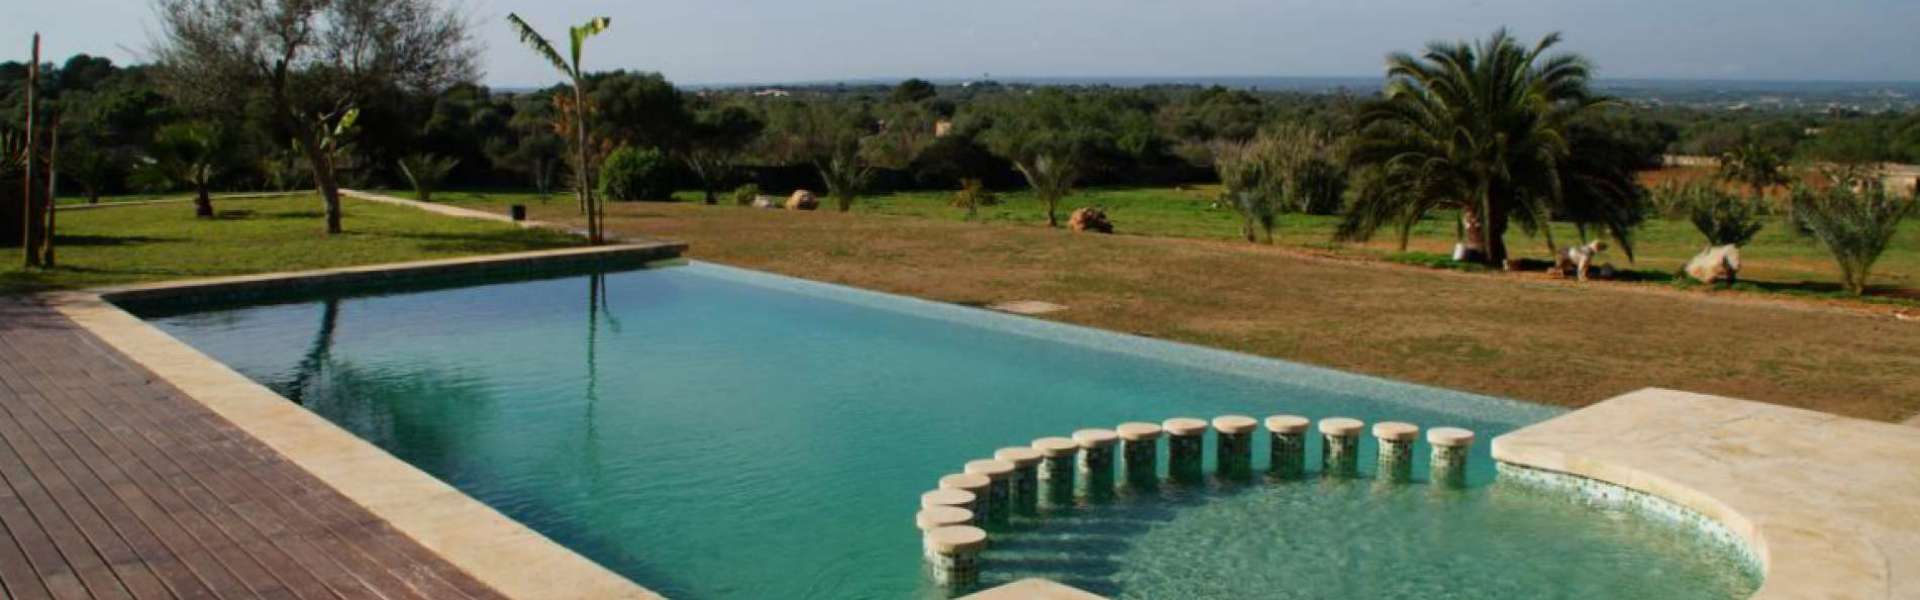 Santanyi - Country estate with indoor pool and wonderful views